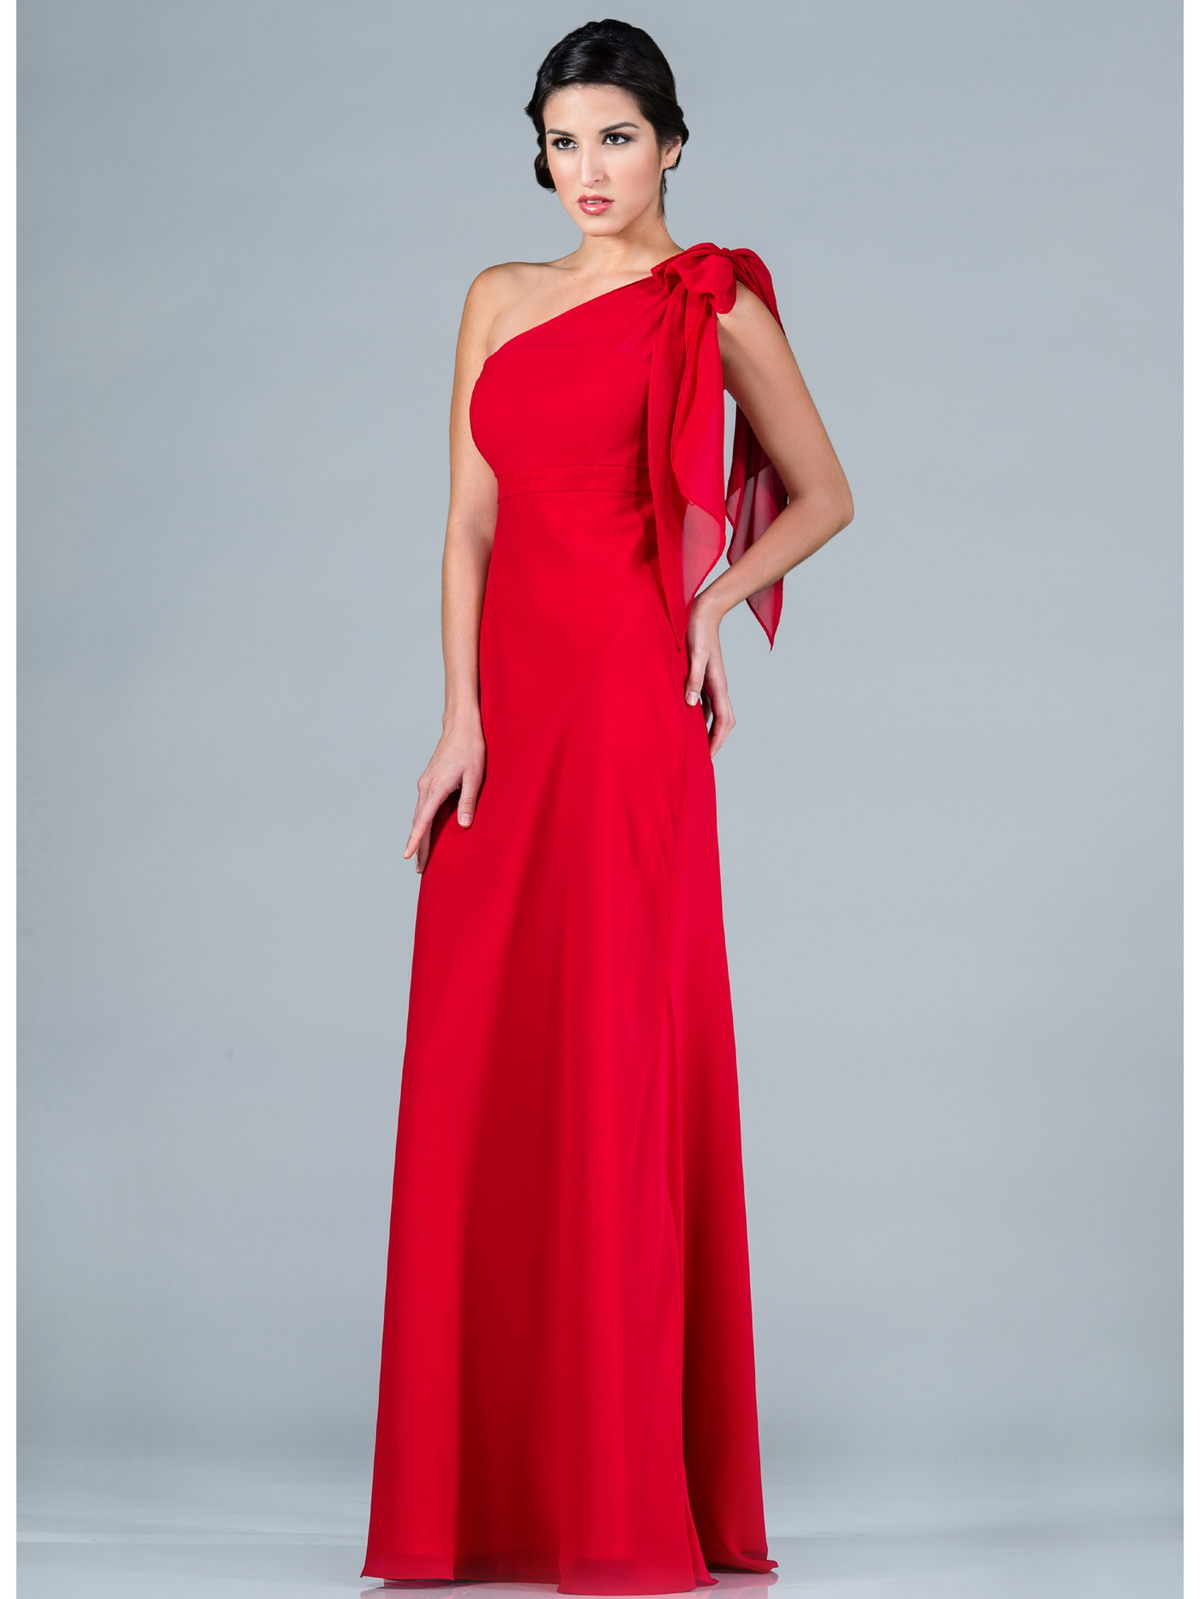 One Shoulder Chiffon Evening Dress | Sung Boutique L.A.